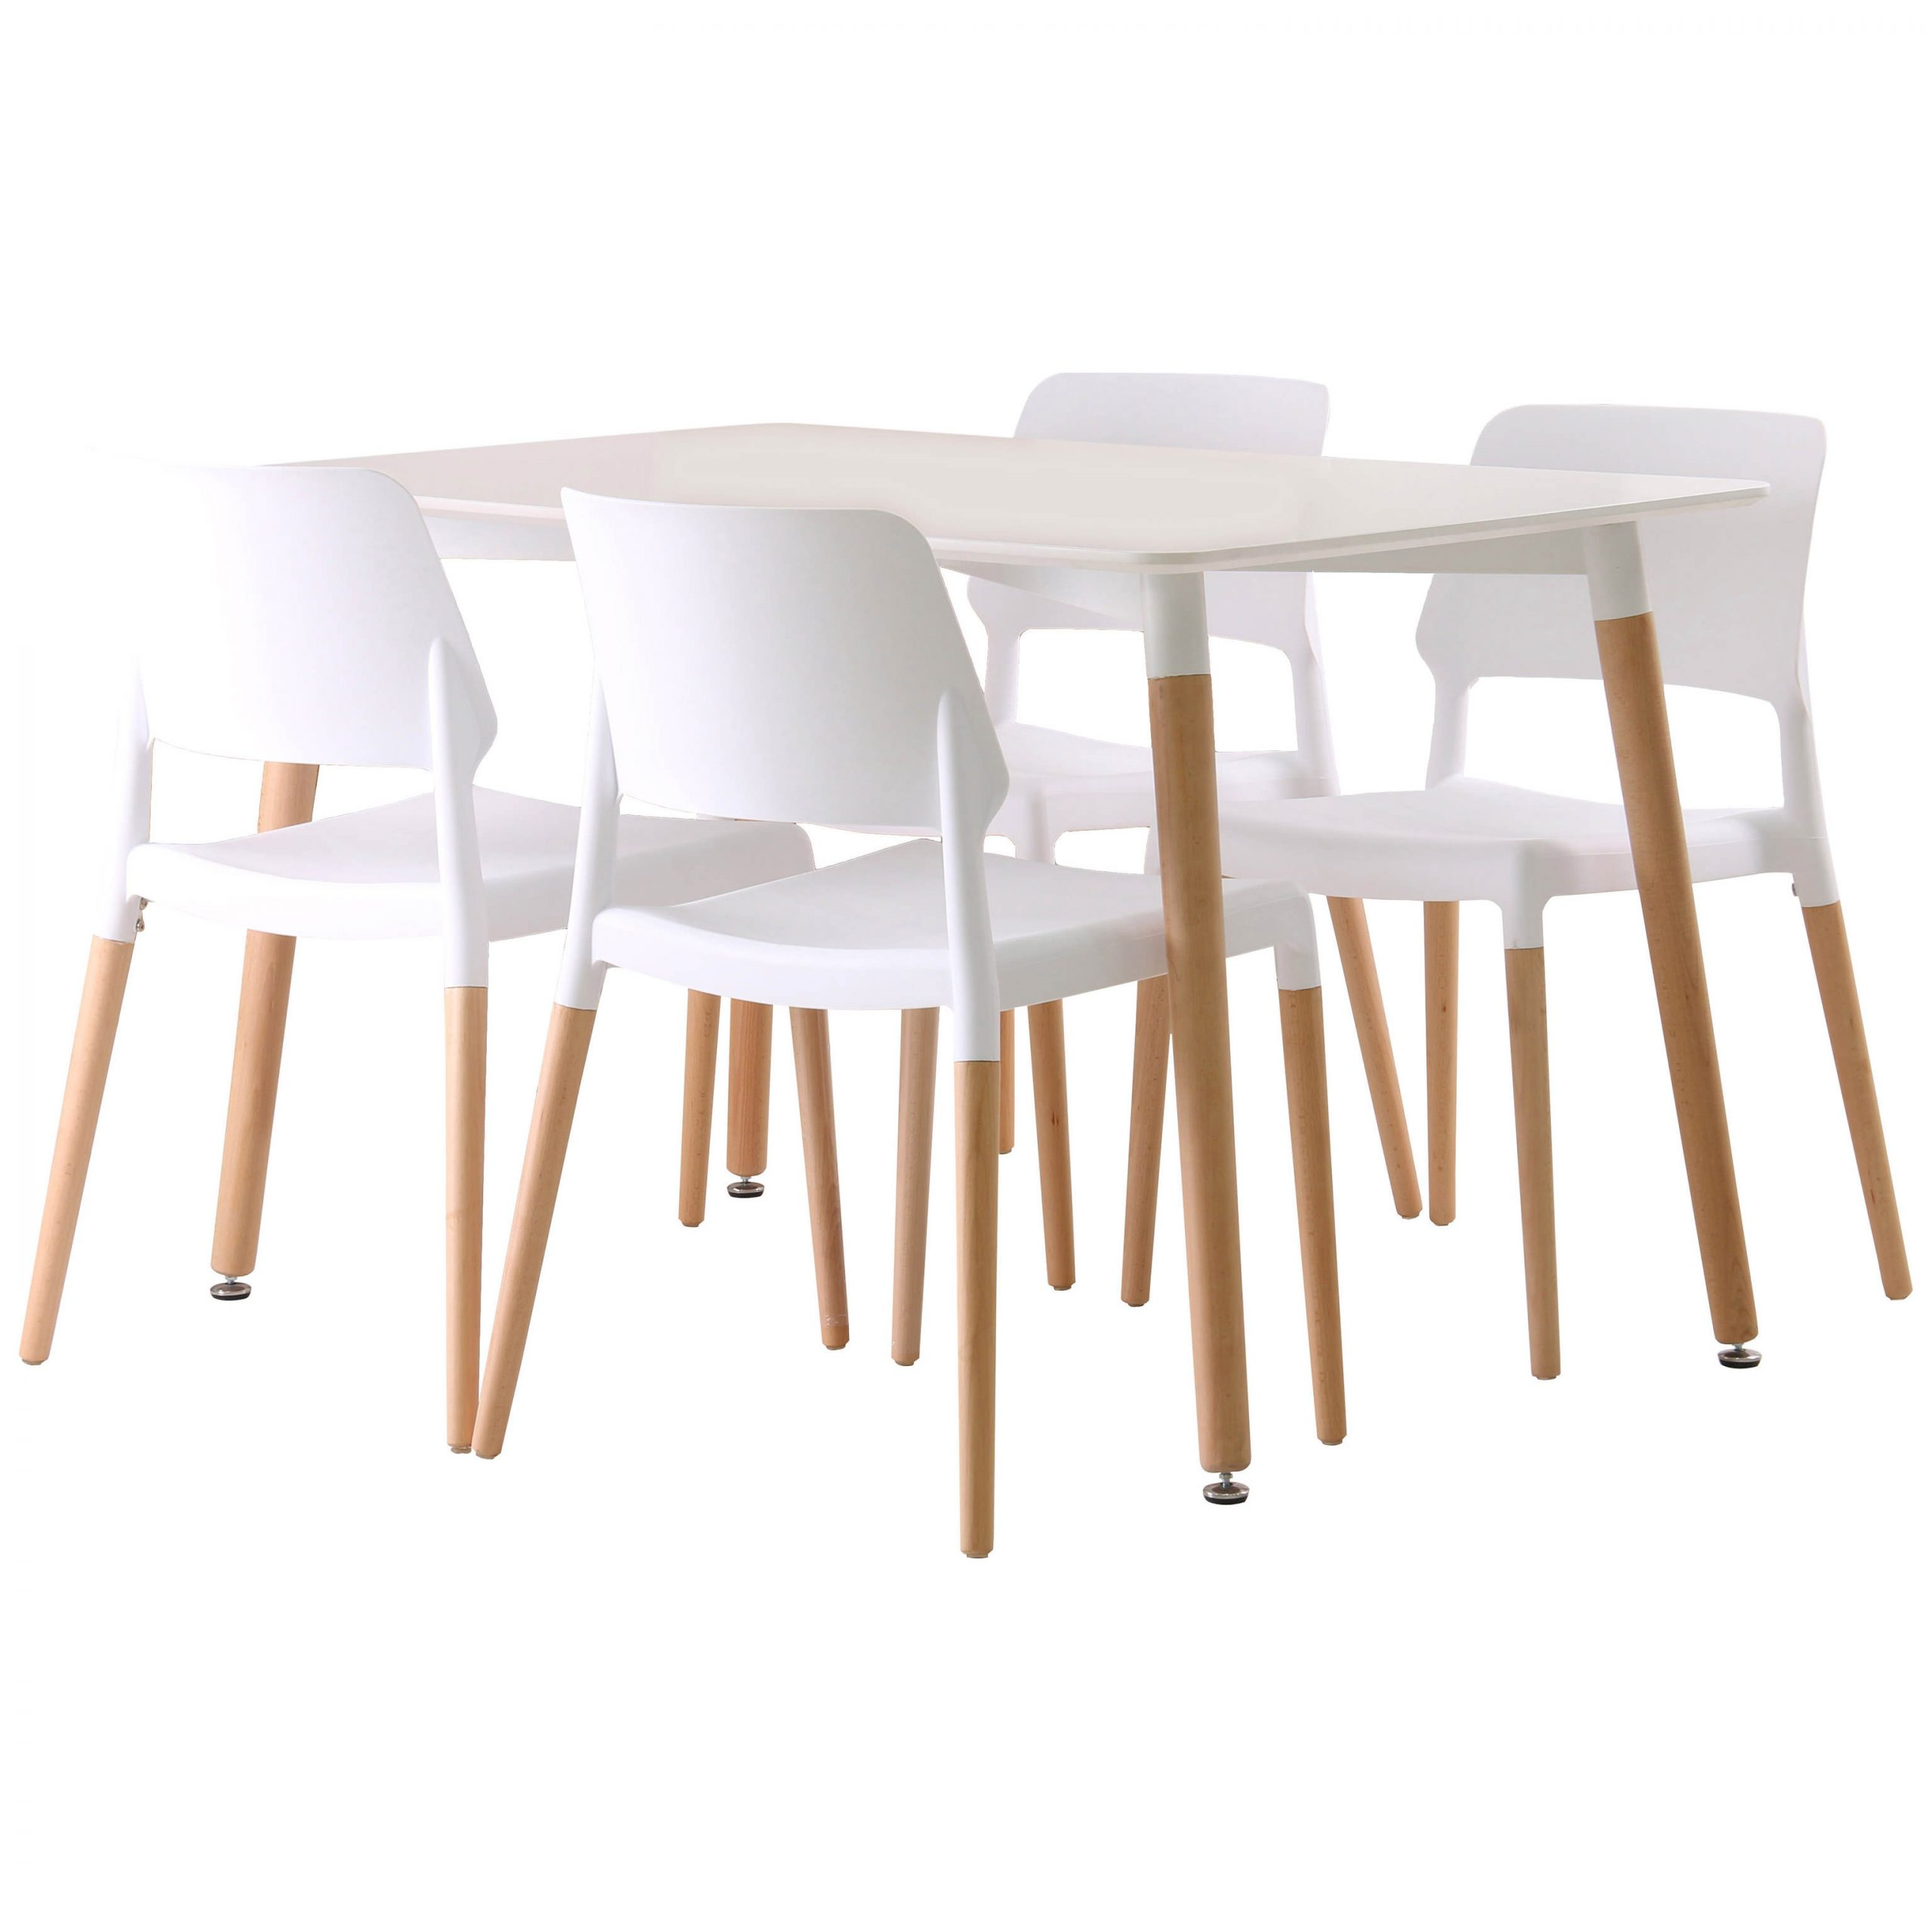 Details About Rectangle Dining Table And Chair Set With 4 Seats (View 21 of 30)